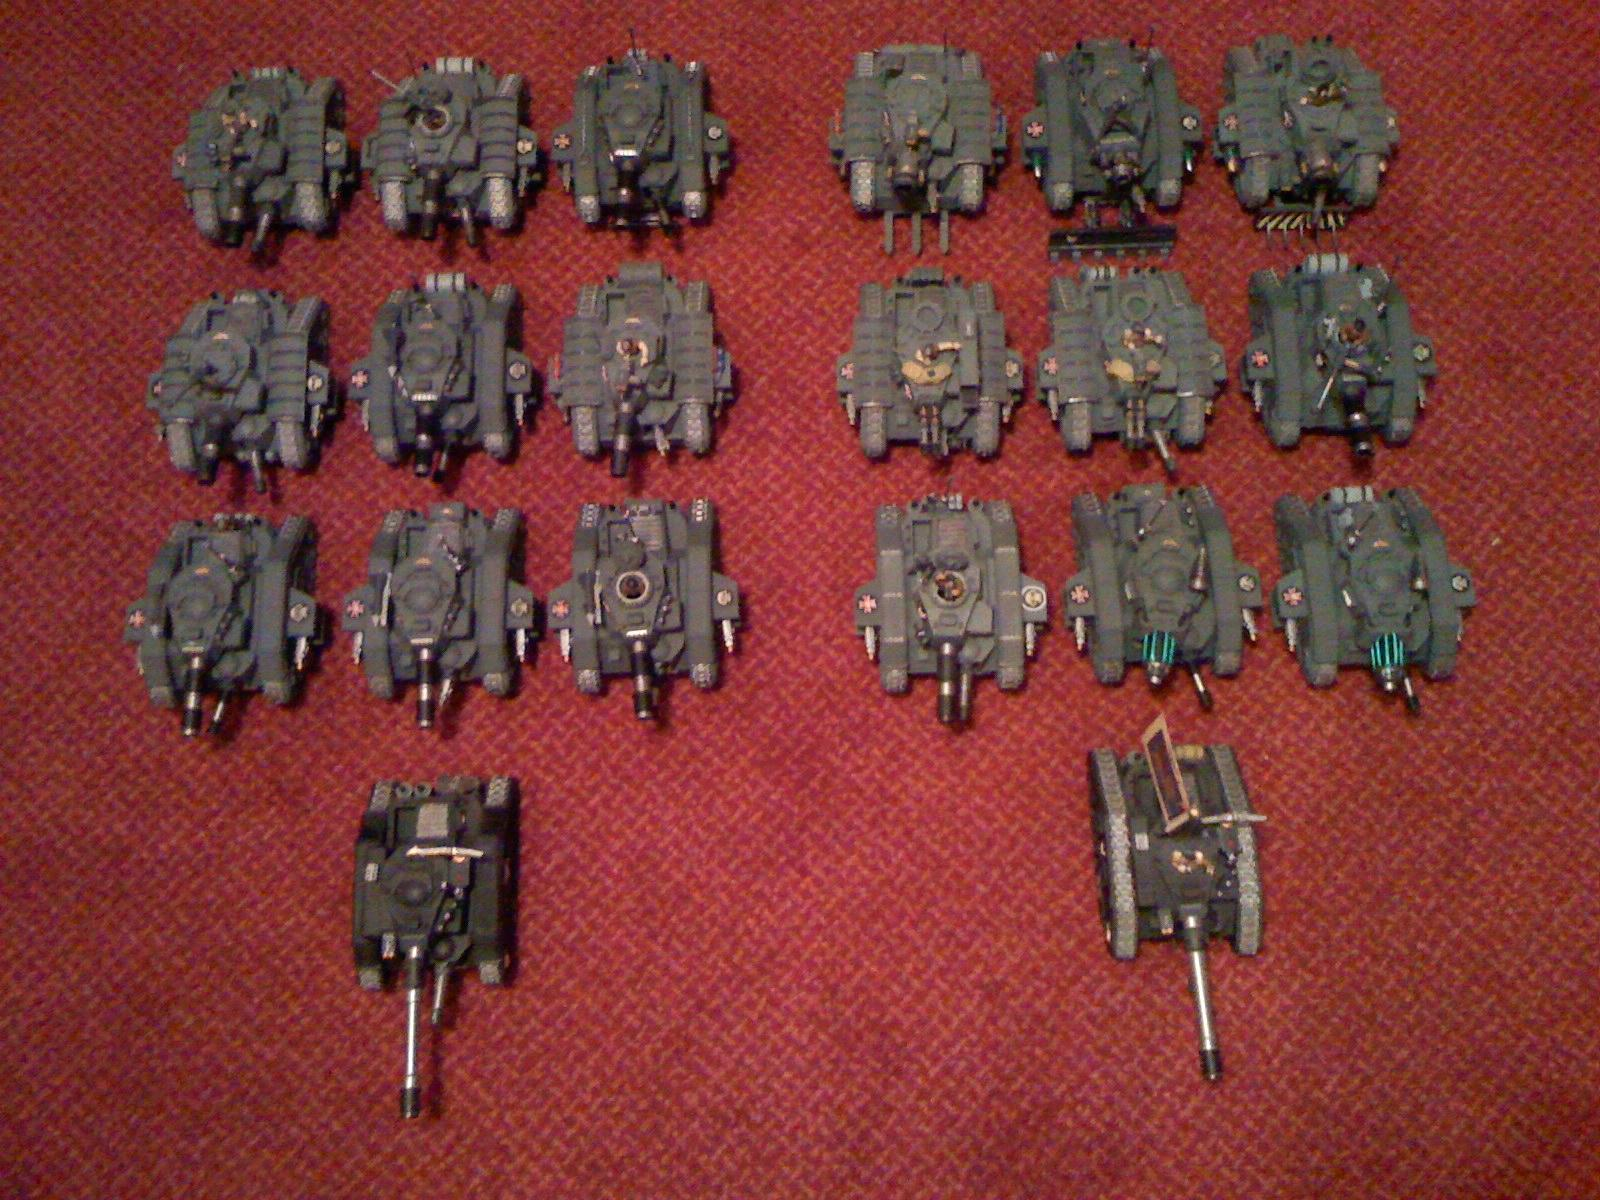 Armored Company, Imperial Guard, Two Companys, Warhammer 40,000